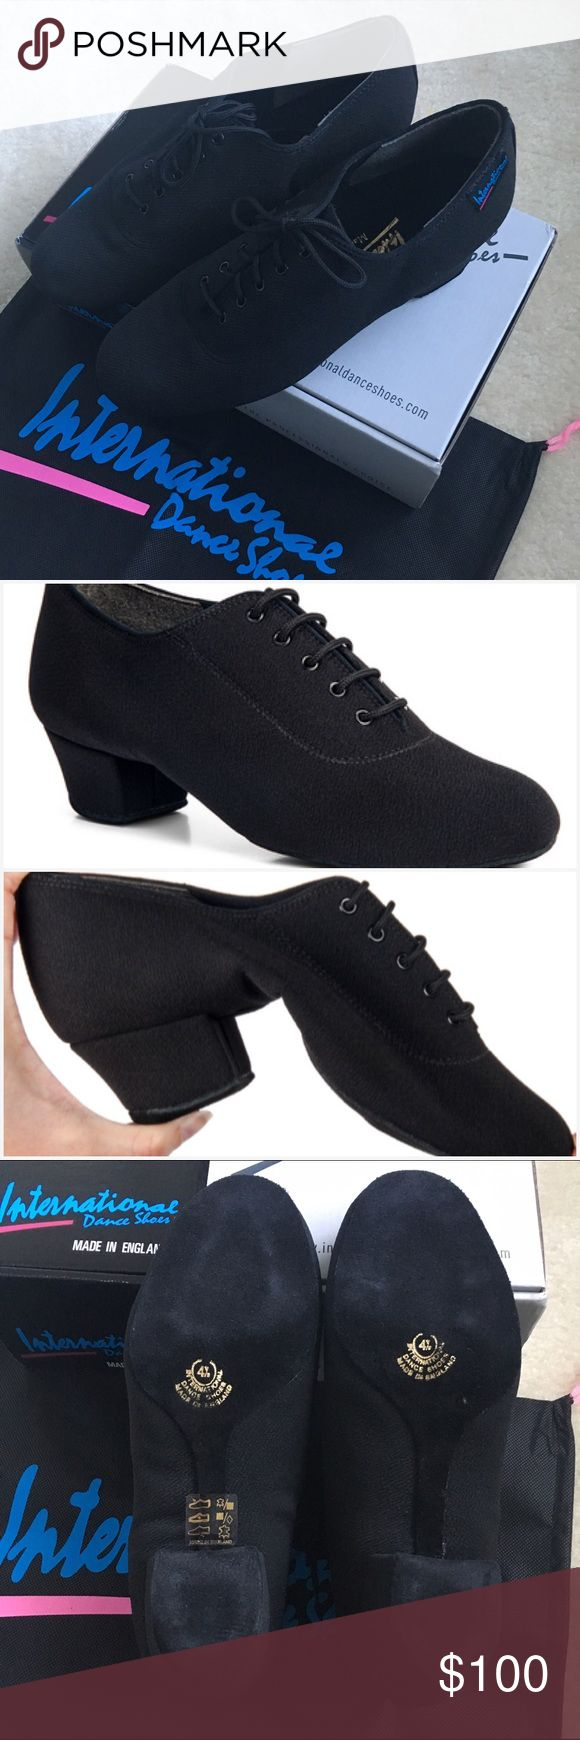 International Dance Shoes HEATHER SPLIT BLACK Hello dance friends!   I bought these really amazing shoes but in the wrong size by accident, I can't return them unfortunately.   Selling these brand new never worn dance shoes. I'm normally a 7.5 US size, and this fit perfect in length at 6.5, best fitted small for dancing.   The shoes are incredibly comfortable, they're like butter! They're similar to Jazz shoes (in my opinion better) because it has a small heel and because it's made of lycra…